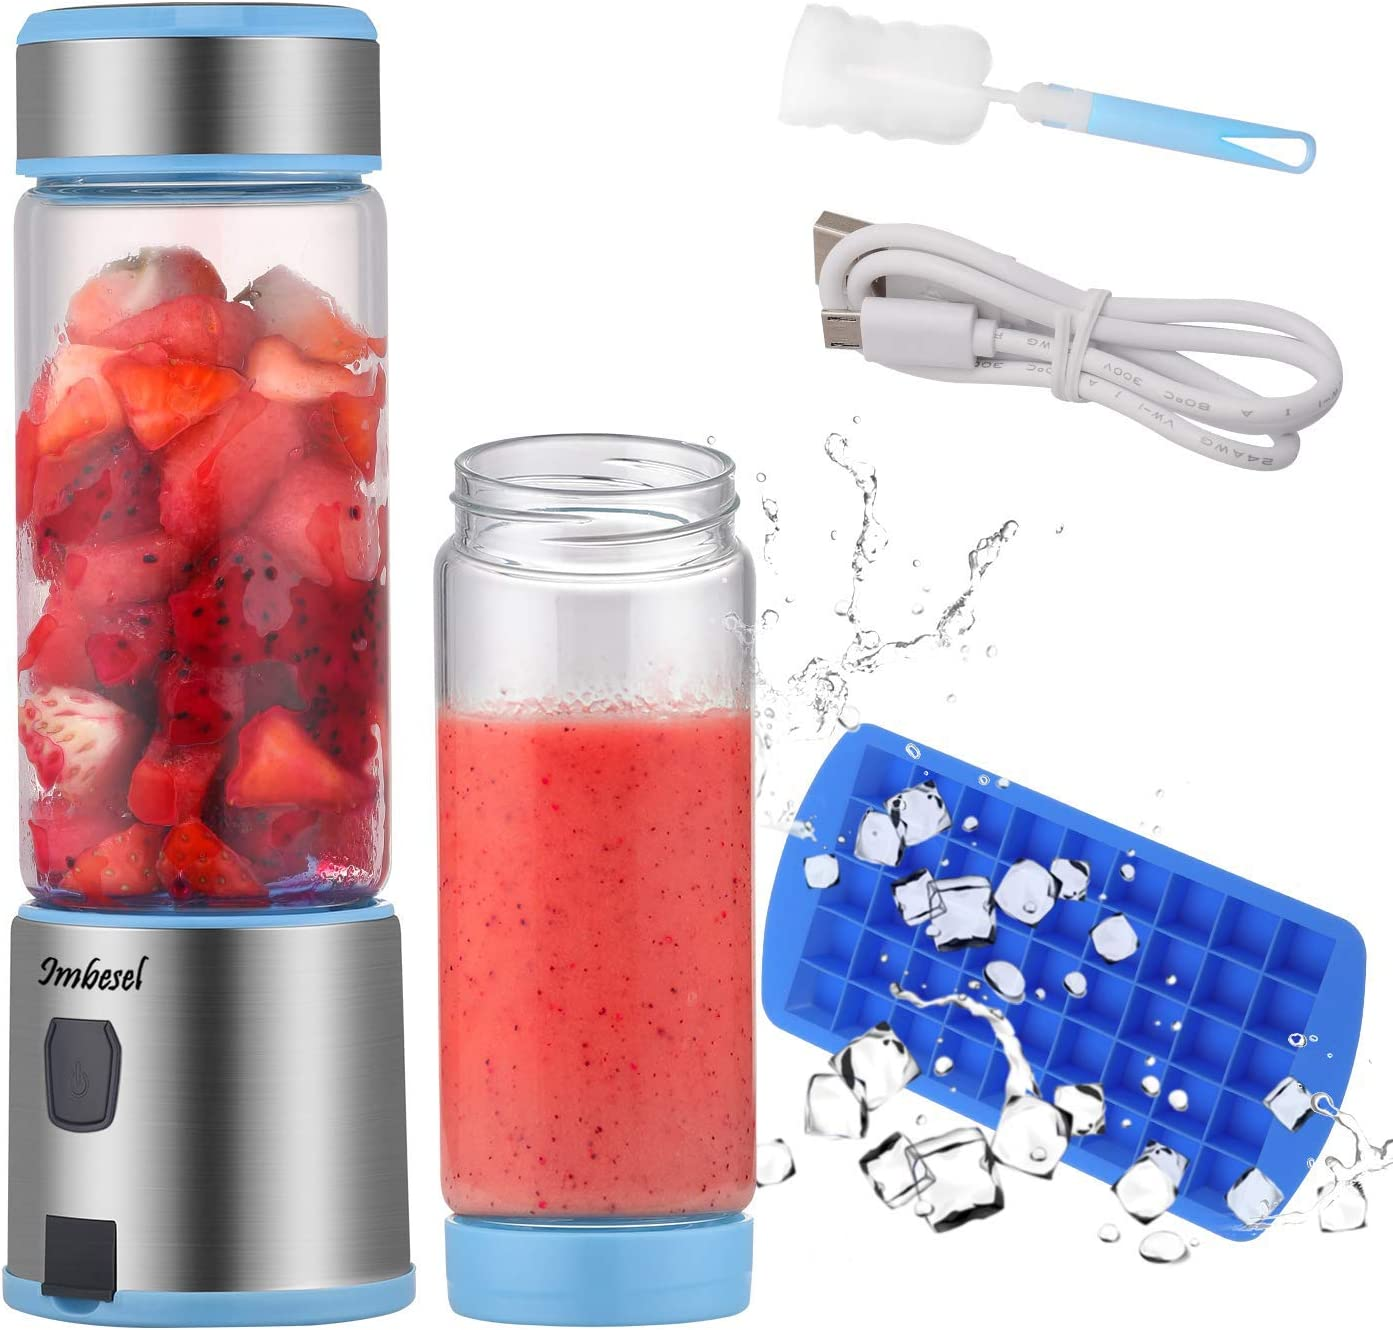 imbesel blender with 12 Functions for Puree, Ice Crush, Shakes and Smoothies